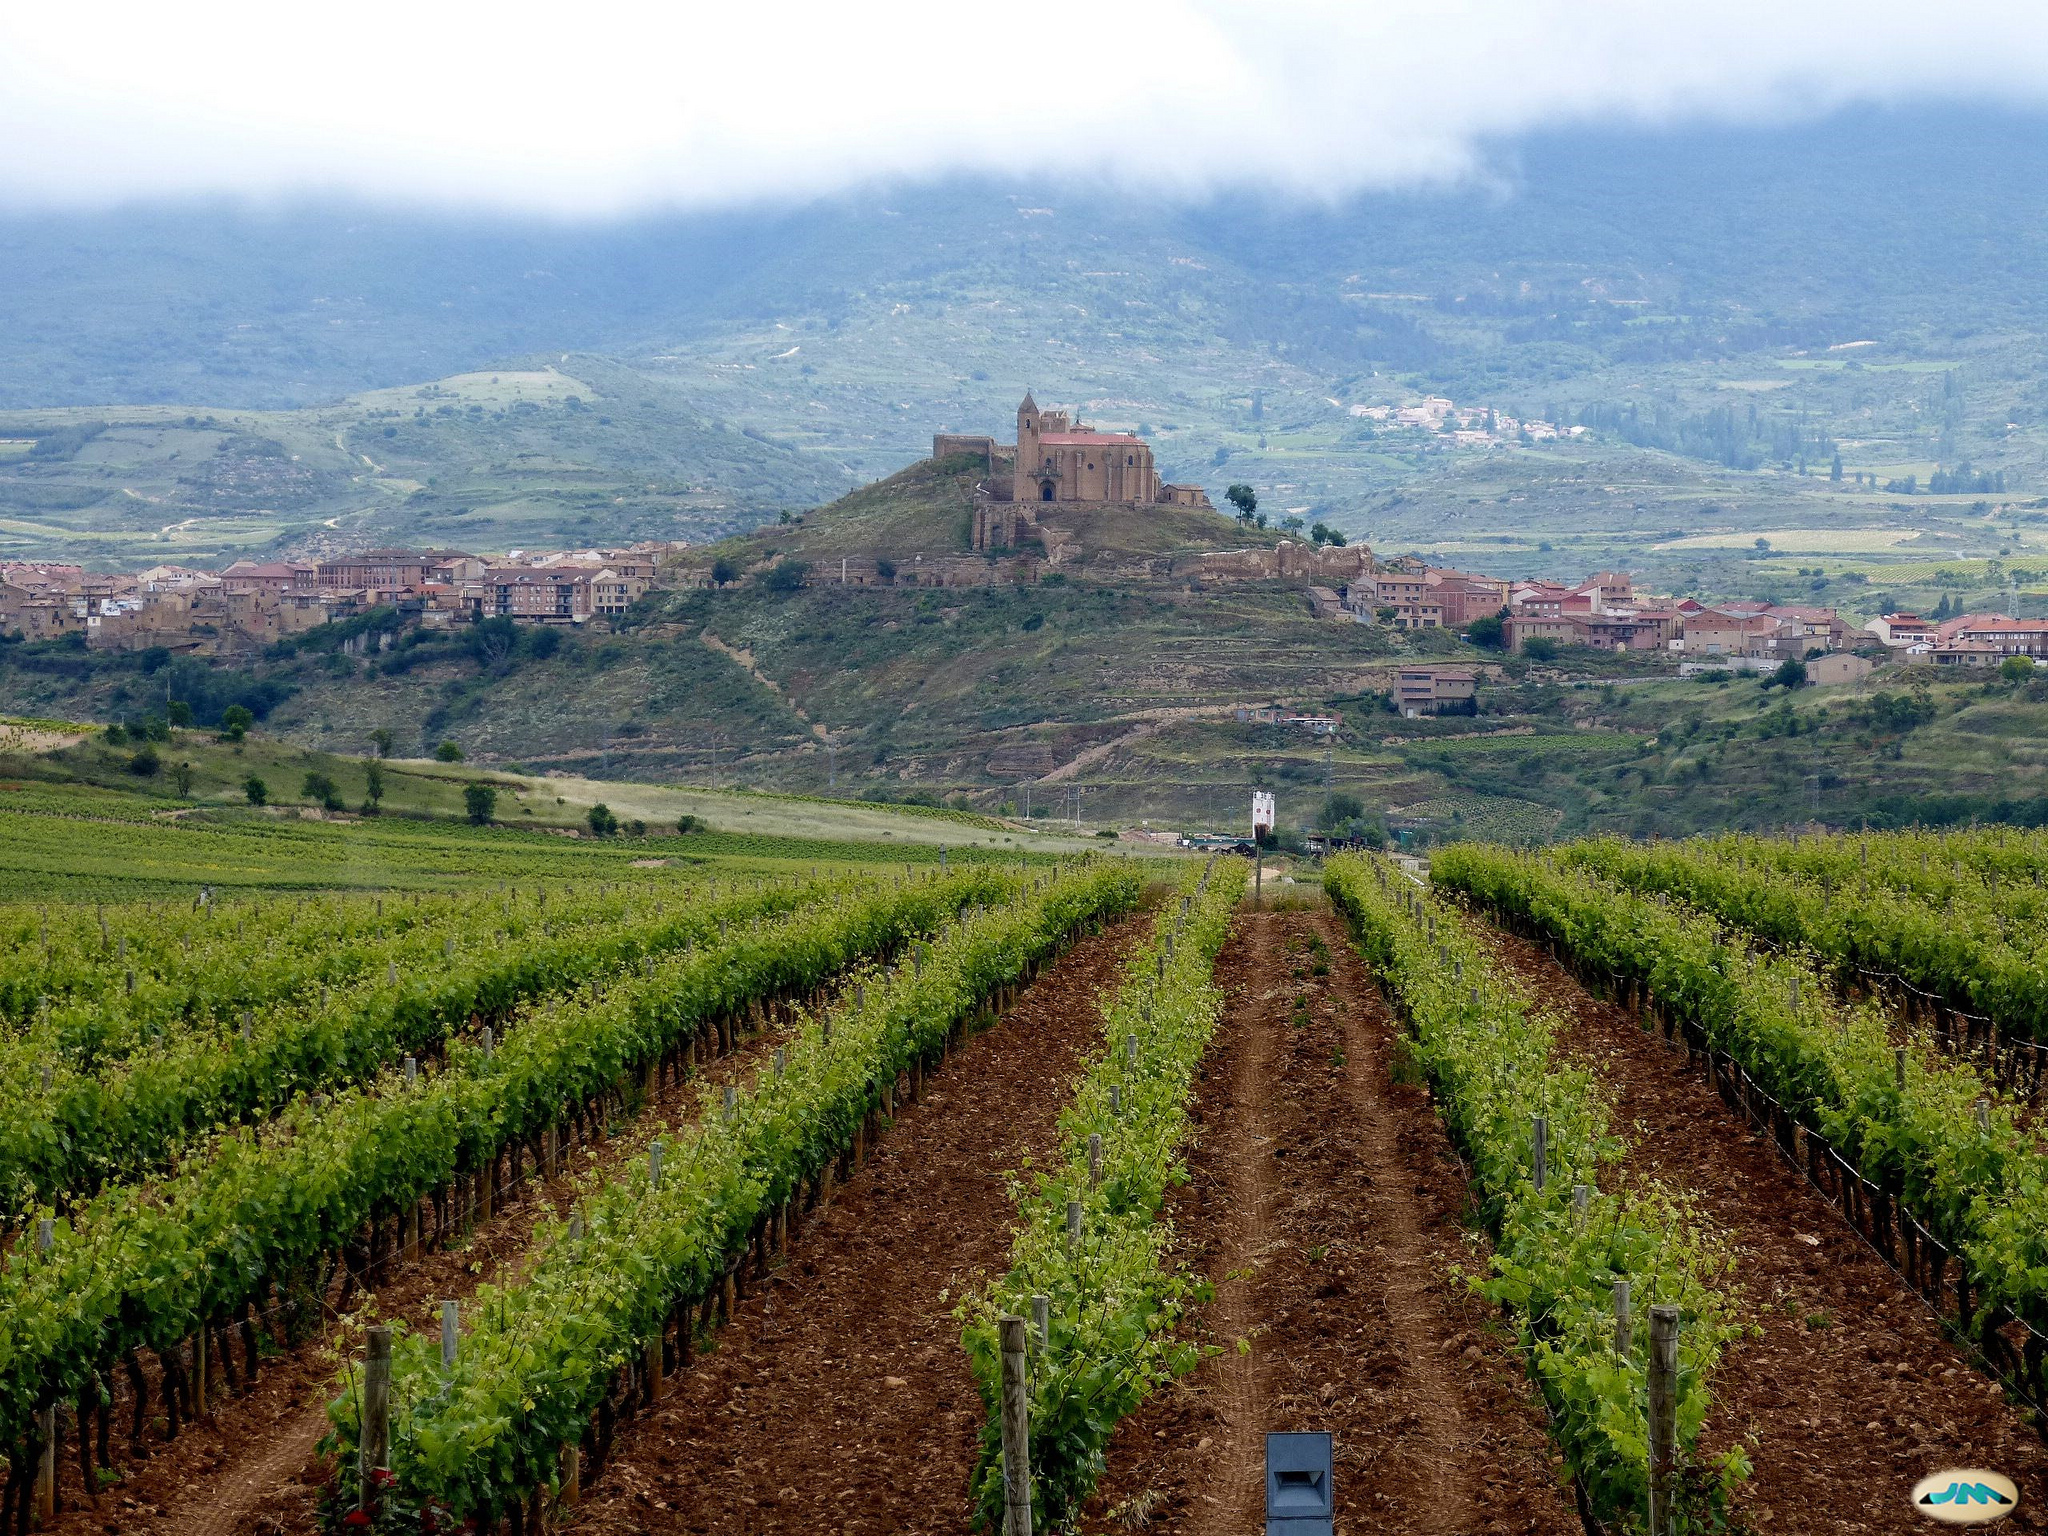 La Rioja vineyard with the village of Briones in the background